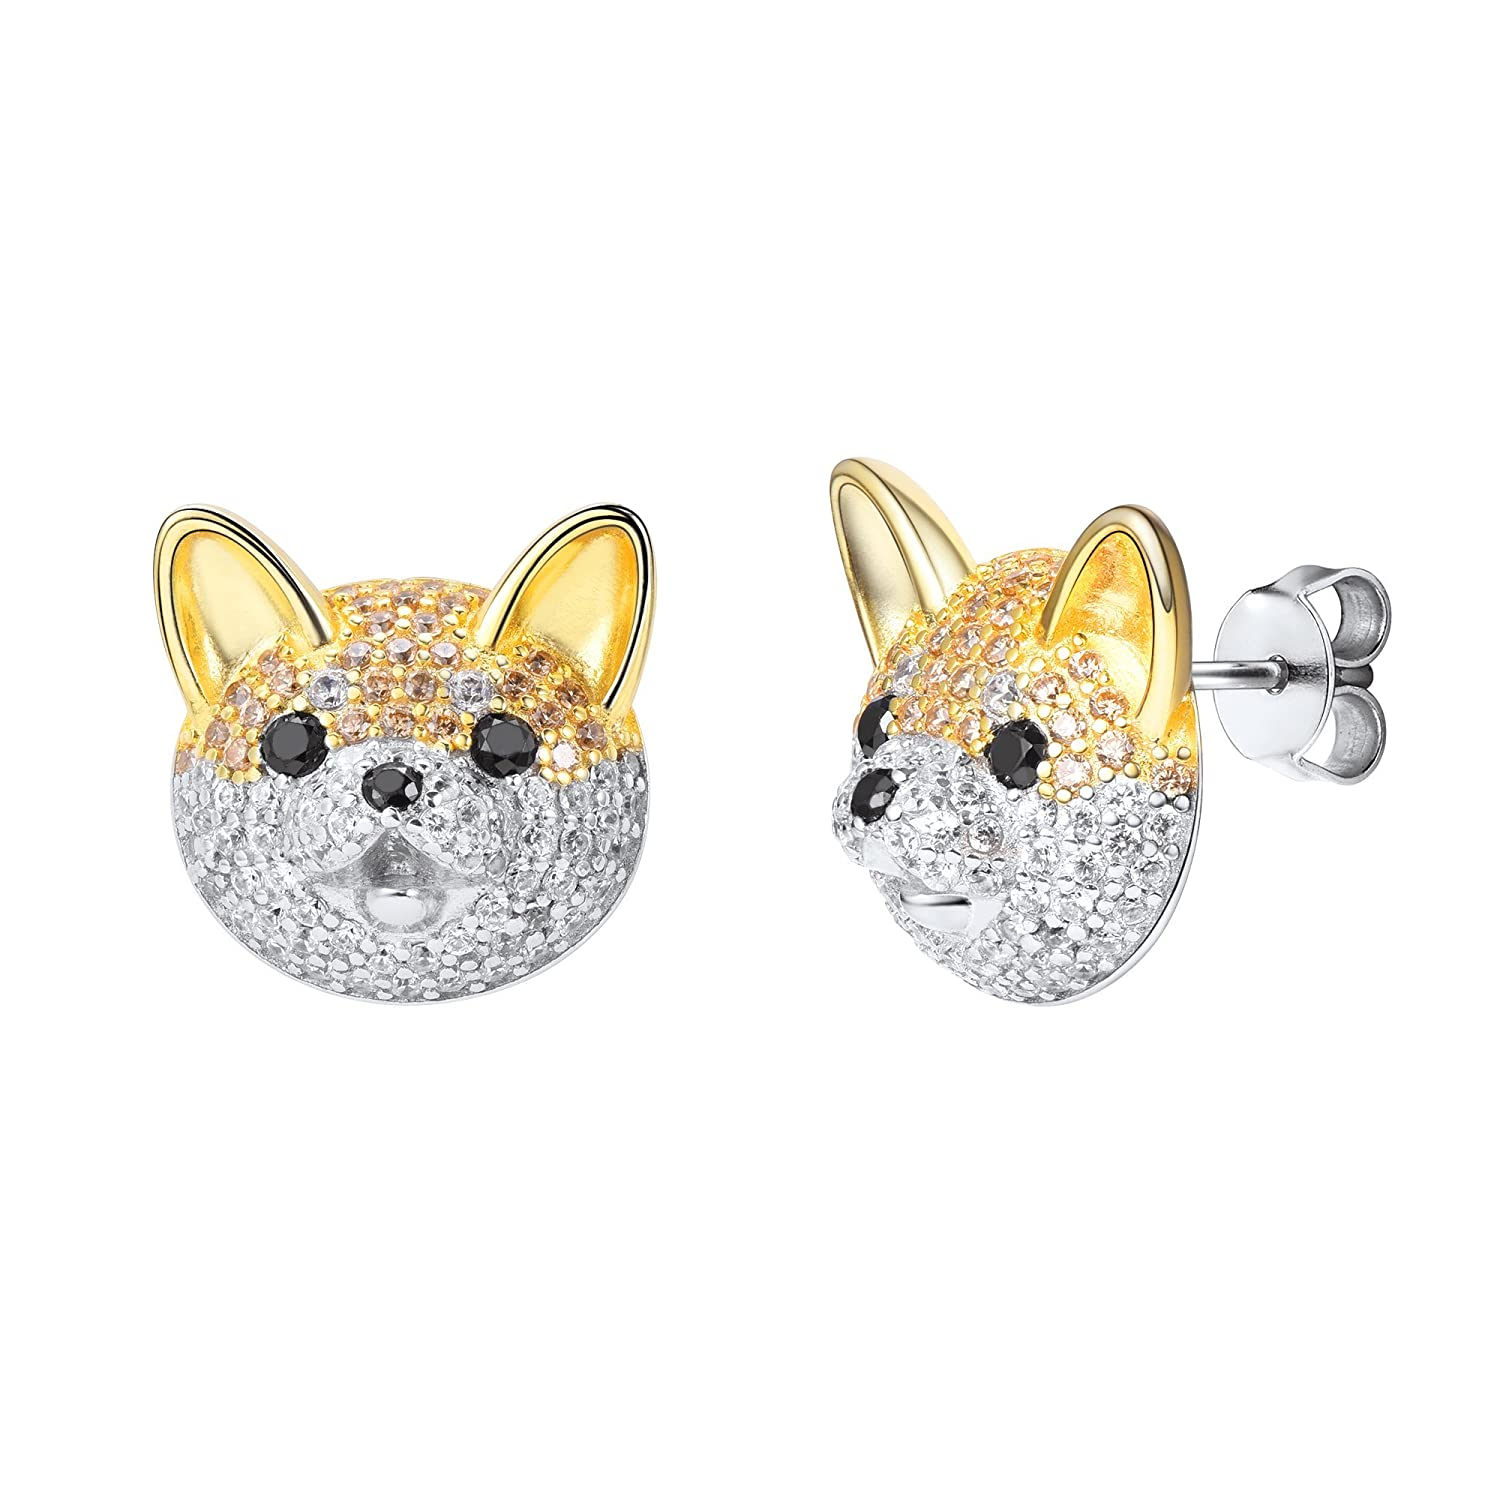 SILVERCUTE Puppy Stud Two-Tone Style Ice Out Shining And Adorable Animal Earrings